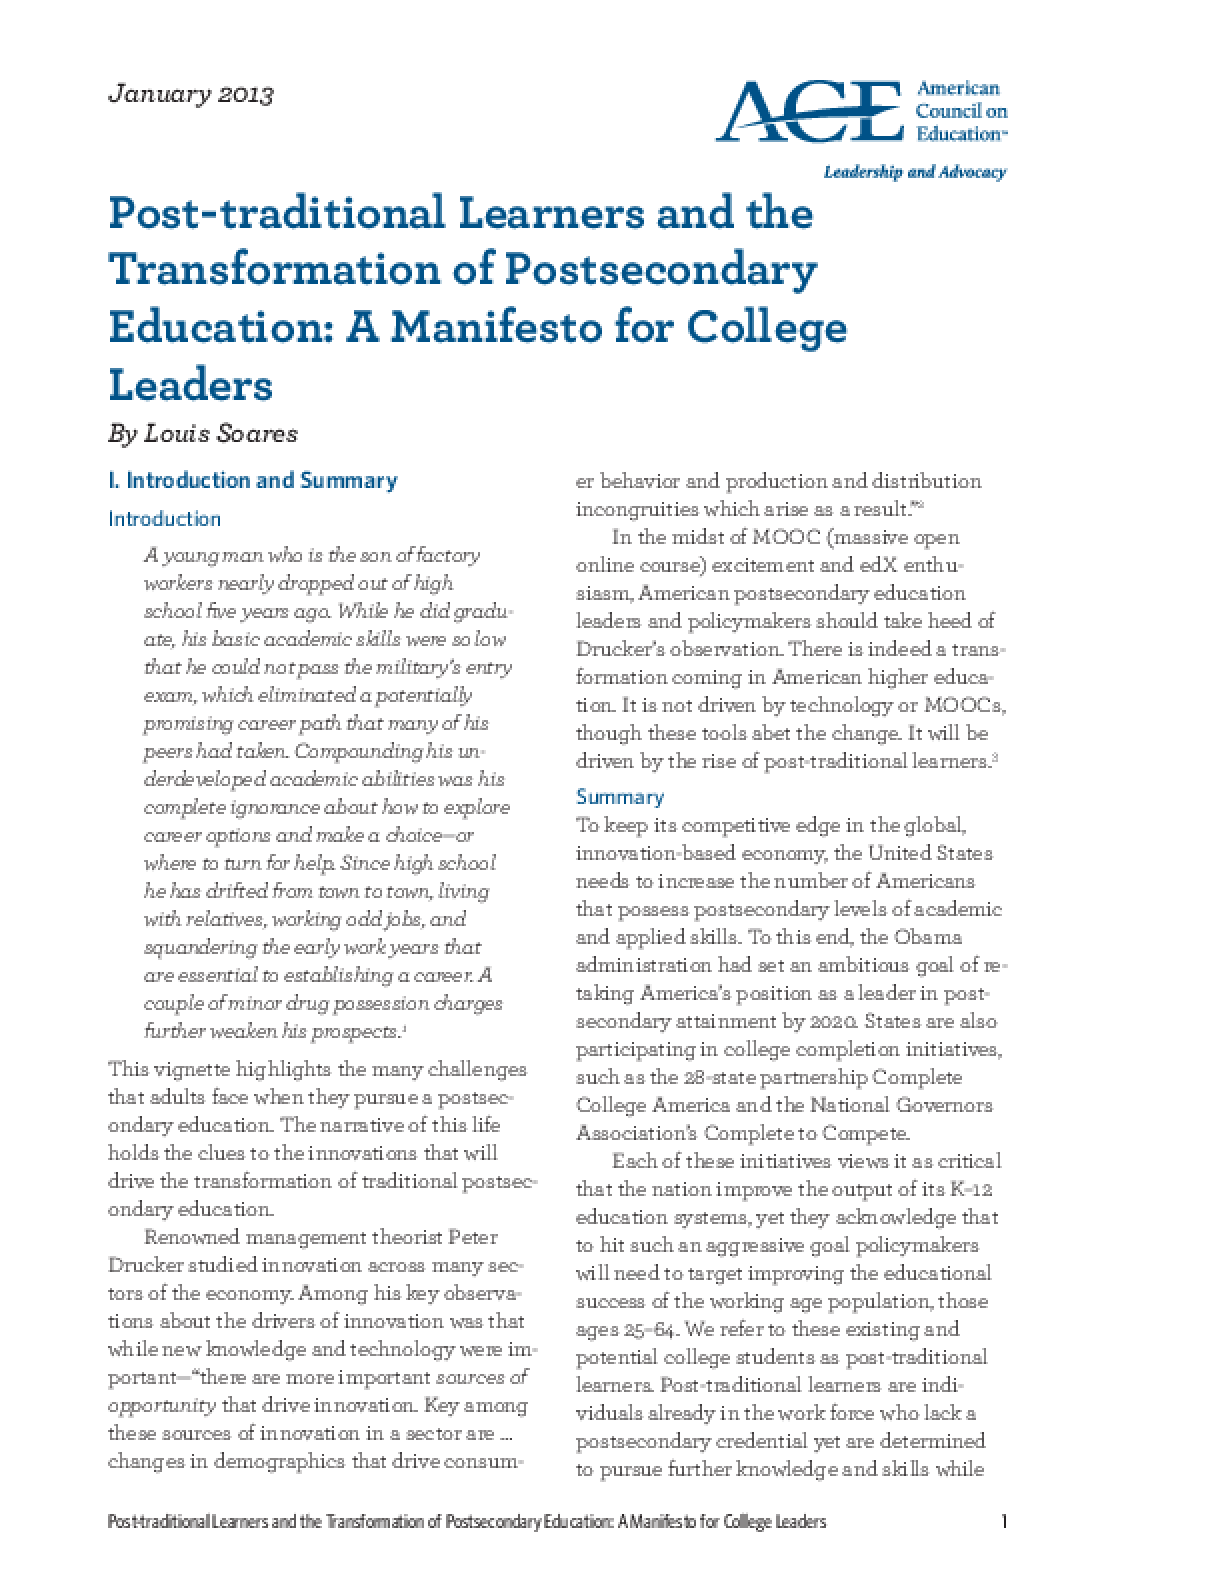 Post-traditional Learners and the Transformation of Postsecondary Education: A Manifesto for College Leaders